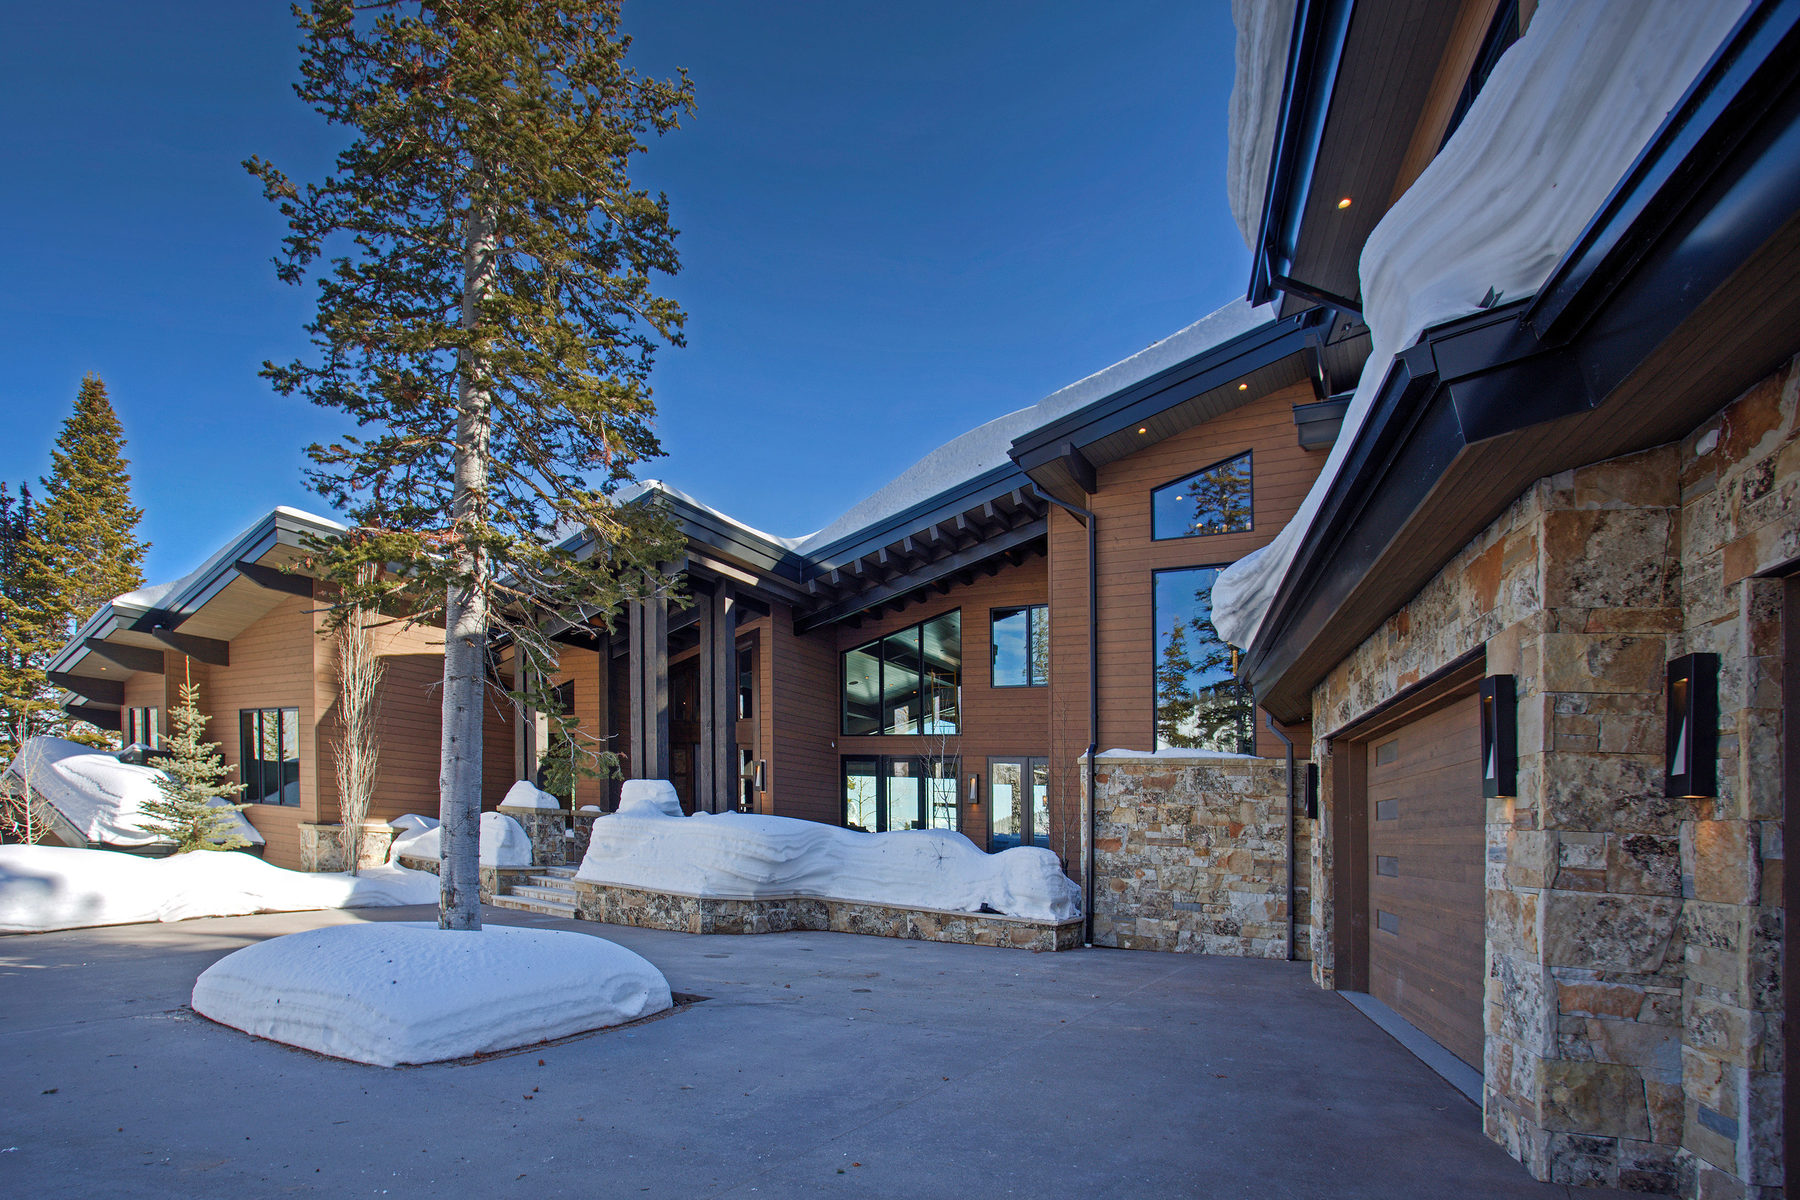 Single Family Home for Sale at Don't miss this incredible opportunity to own one of the finest homes ever built 109 White Pine Canyon Rd Park City, Utah 84060 United States